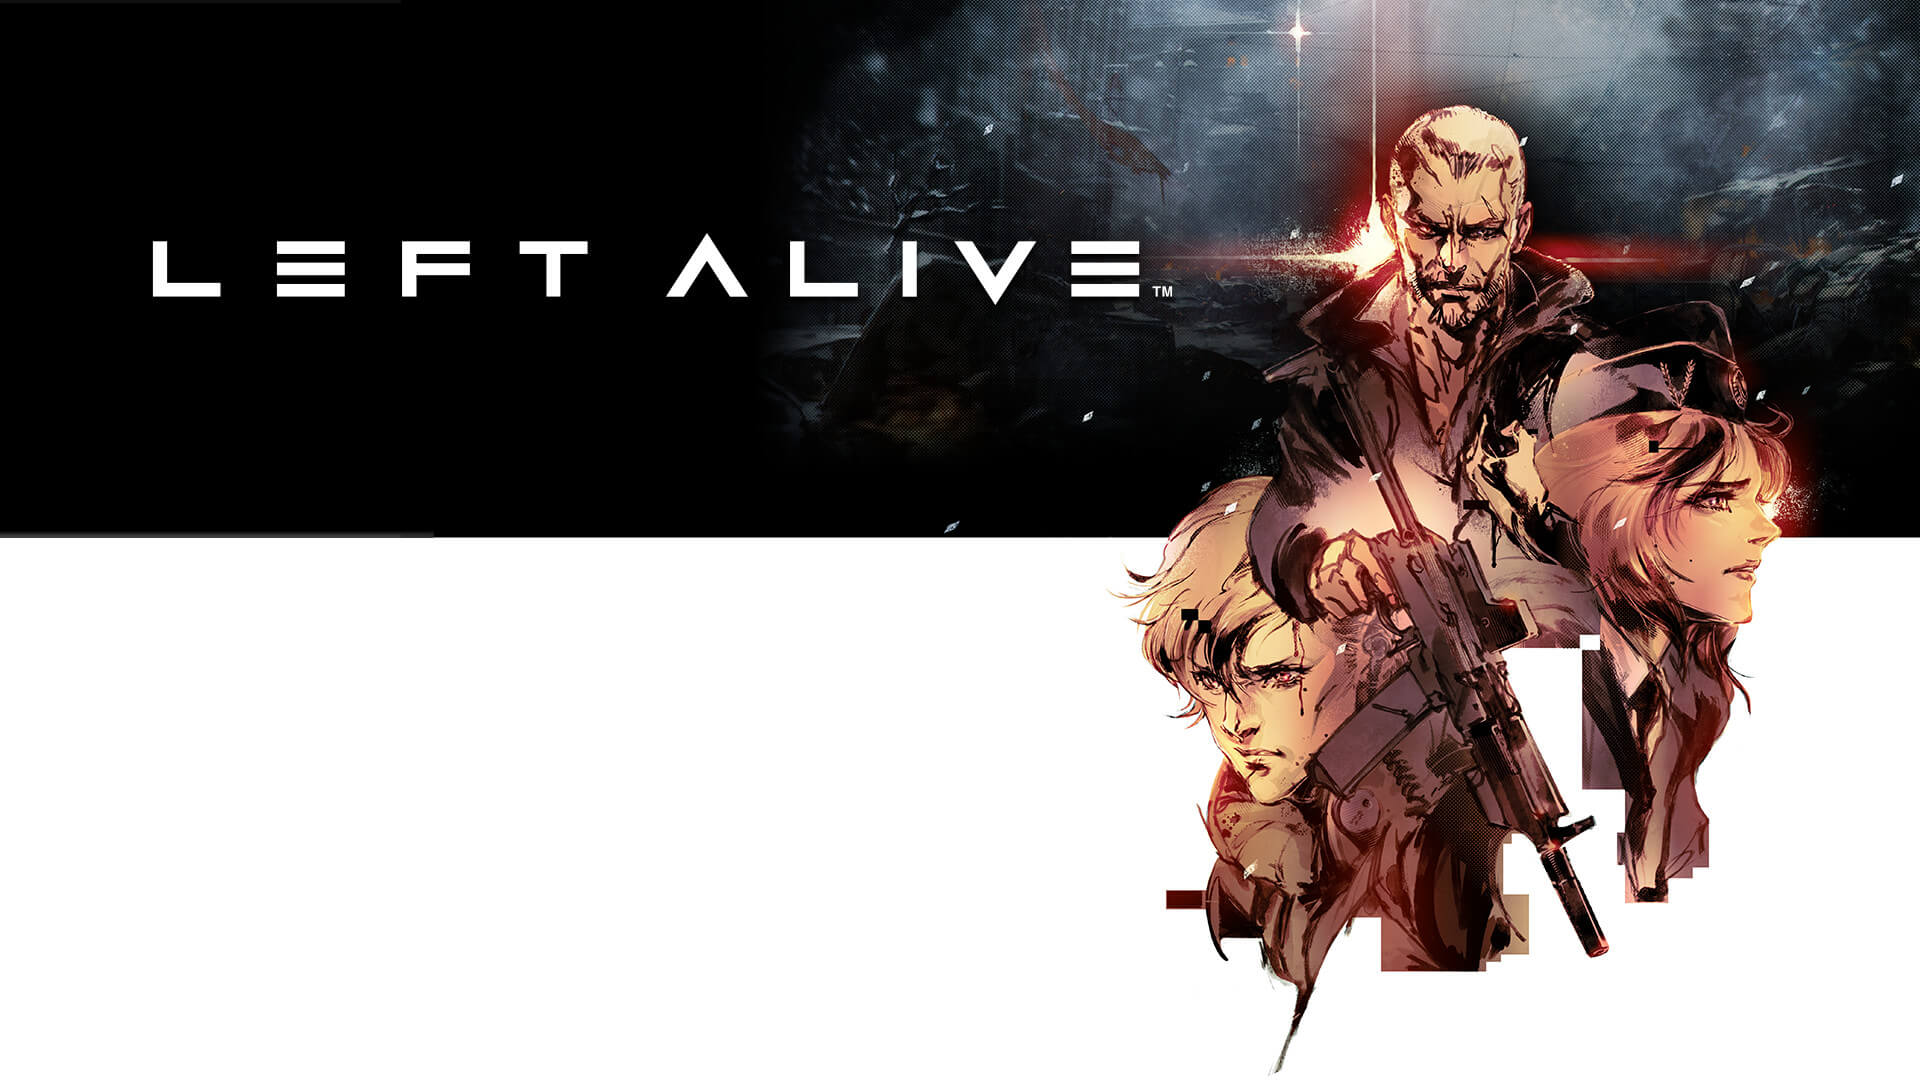 Left Alive Poster Art